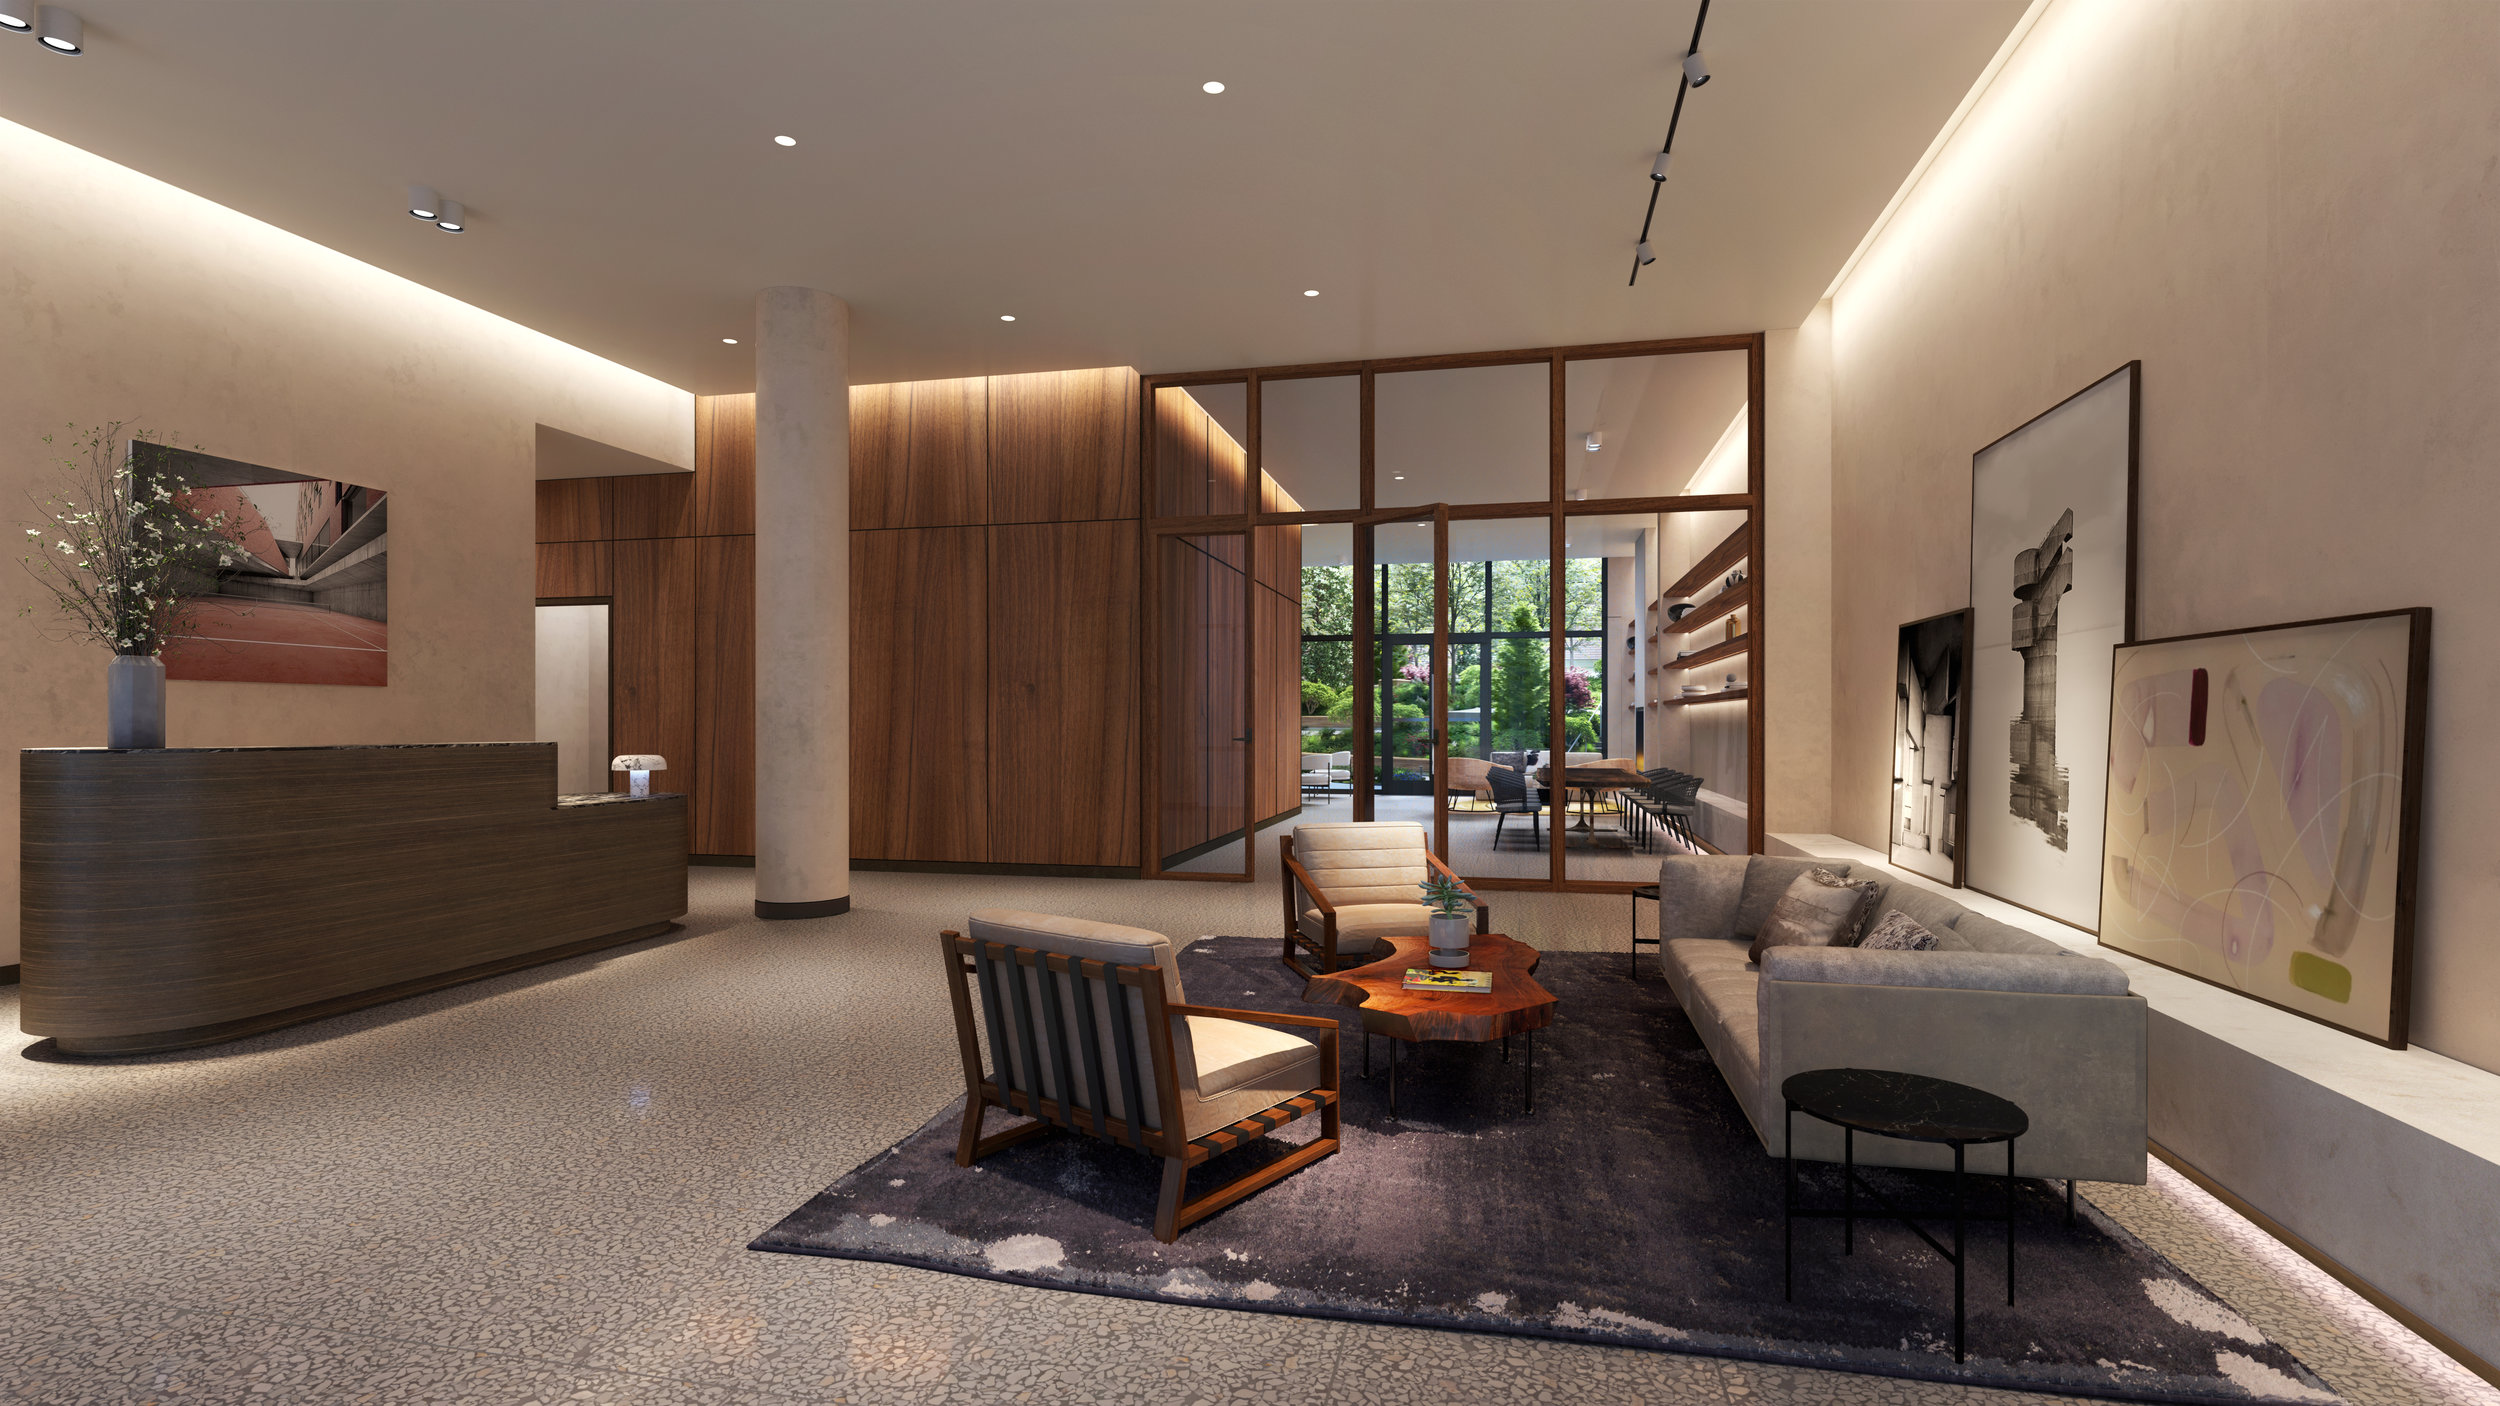 Take A First Look Inside The Morris Adjmi-Designed Front And York, DUMBO's First Resort-Style Development